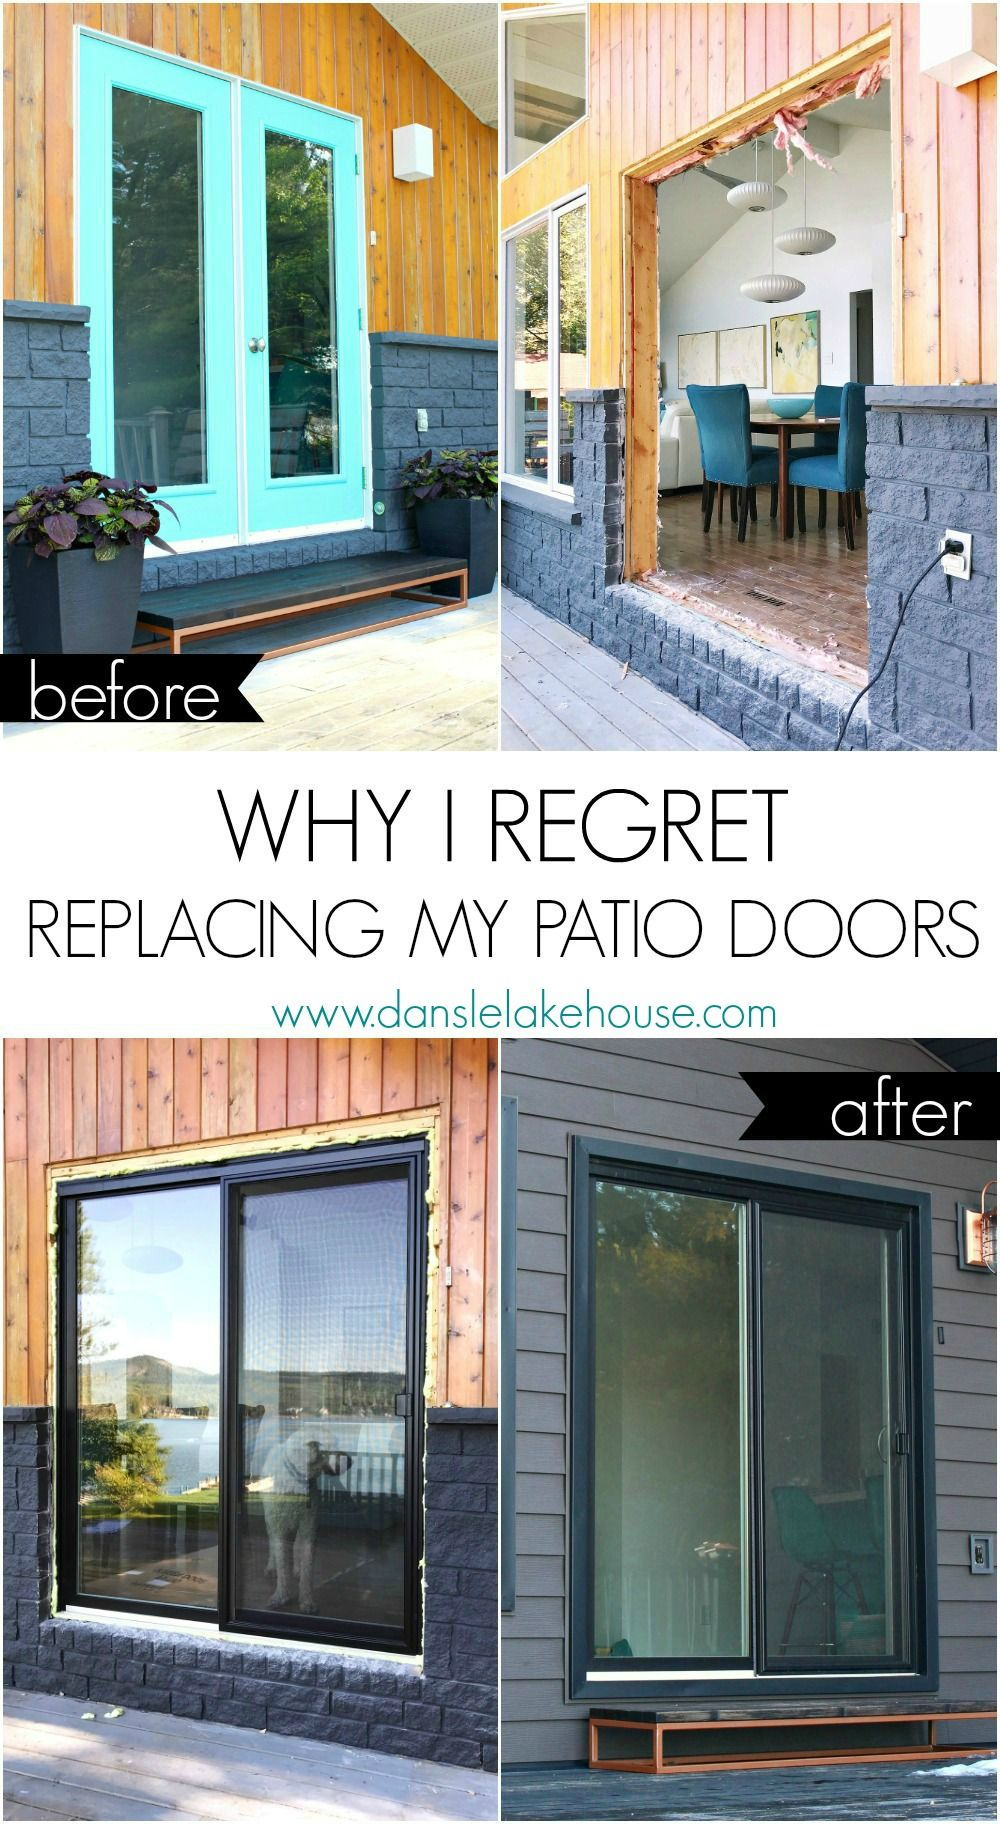 Why I Regret Replacing My Garden Doors For Sliding Glass Patio Doors I Made A Lot Of Mistakes Sliding Glass Doors Patio Glass Doors Patio Sliding Patio Doors